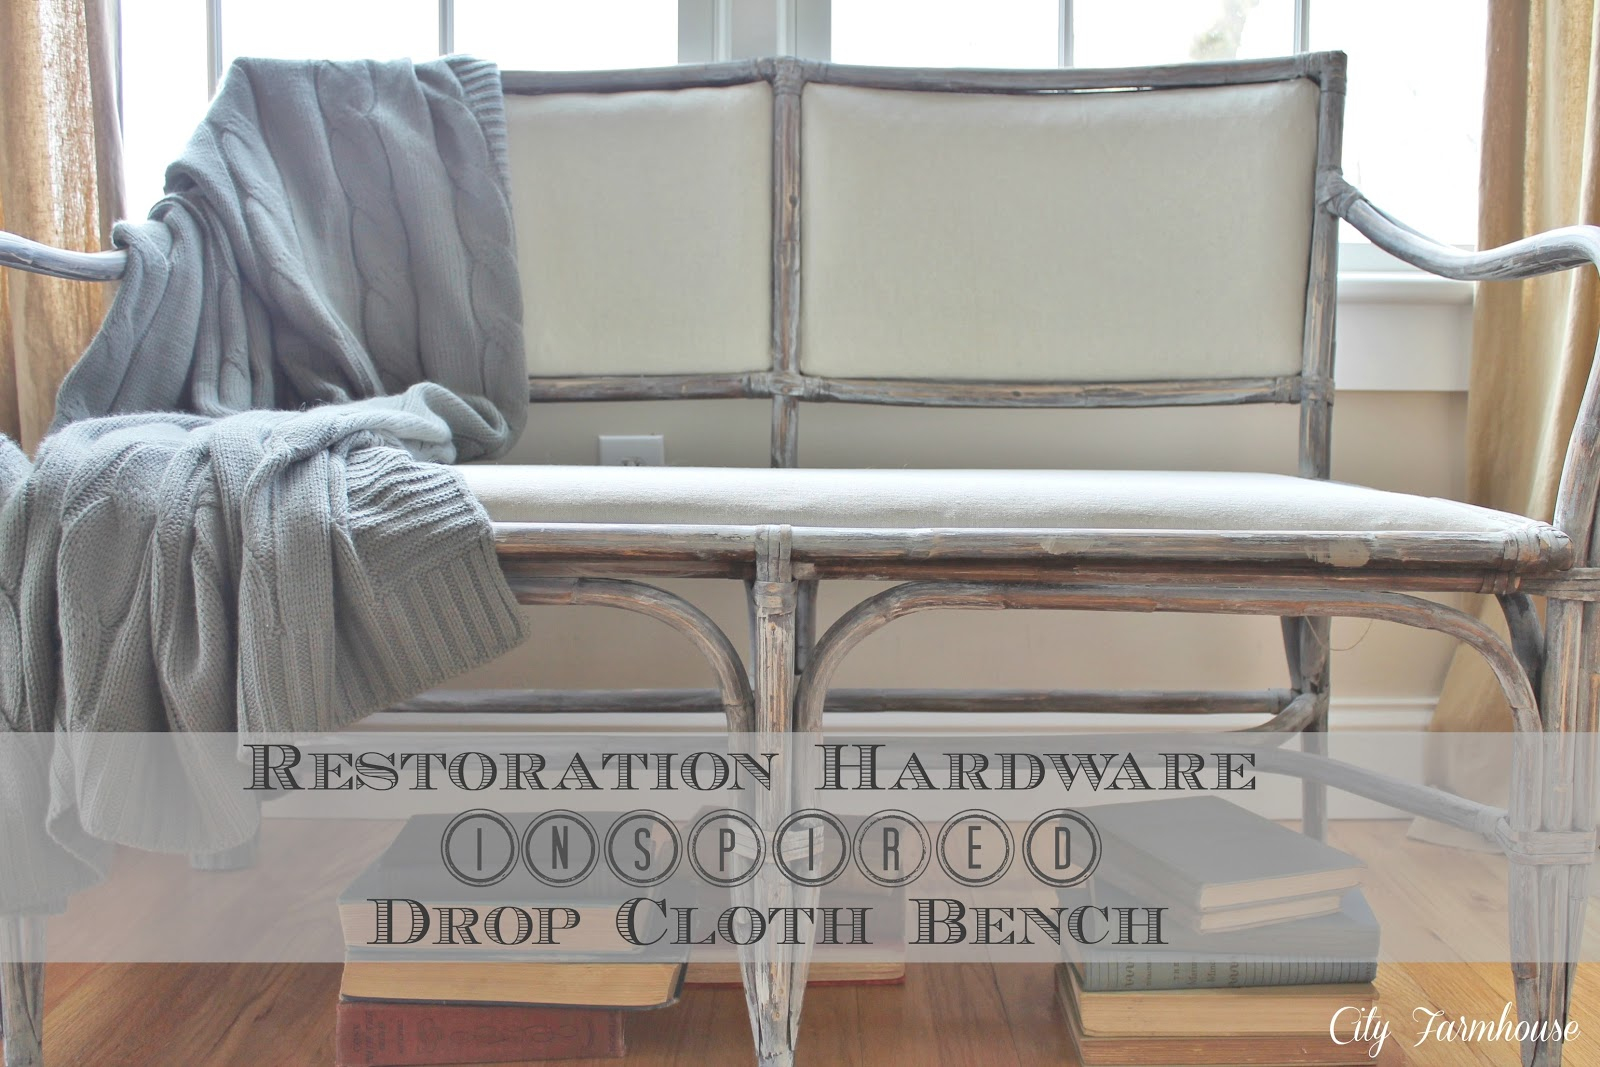 Attractive How to Get The Restoration Hardware Look Without The Cost - City  AW79